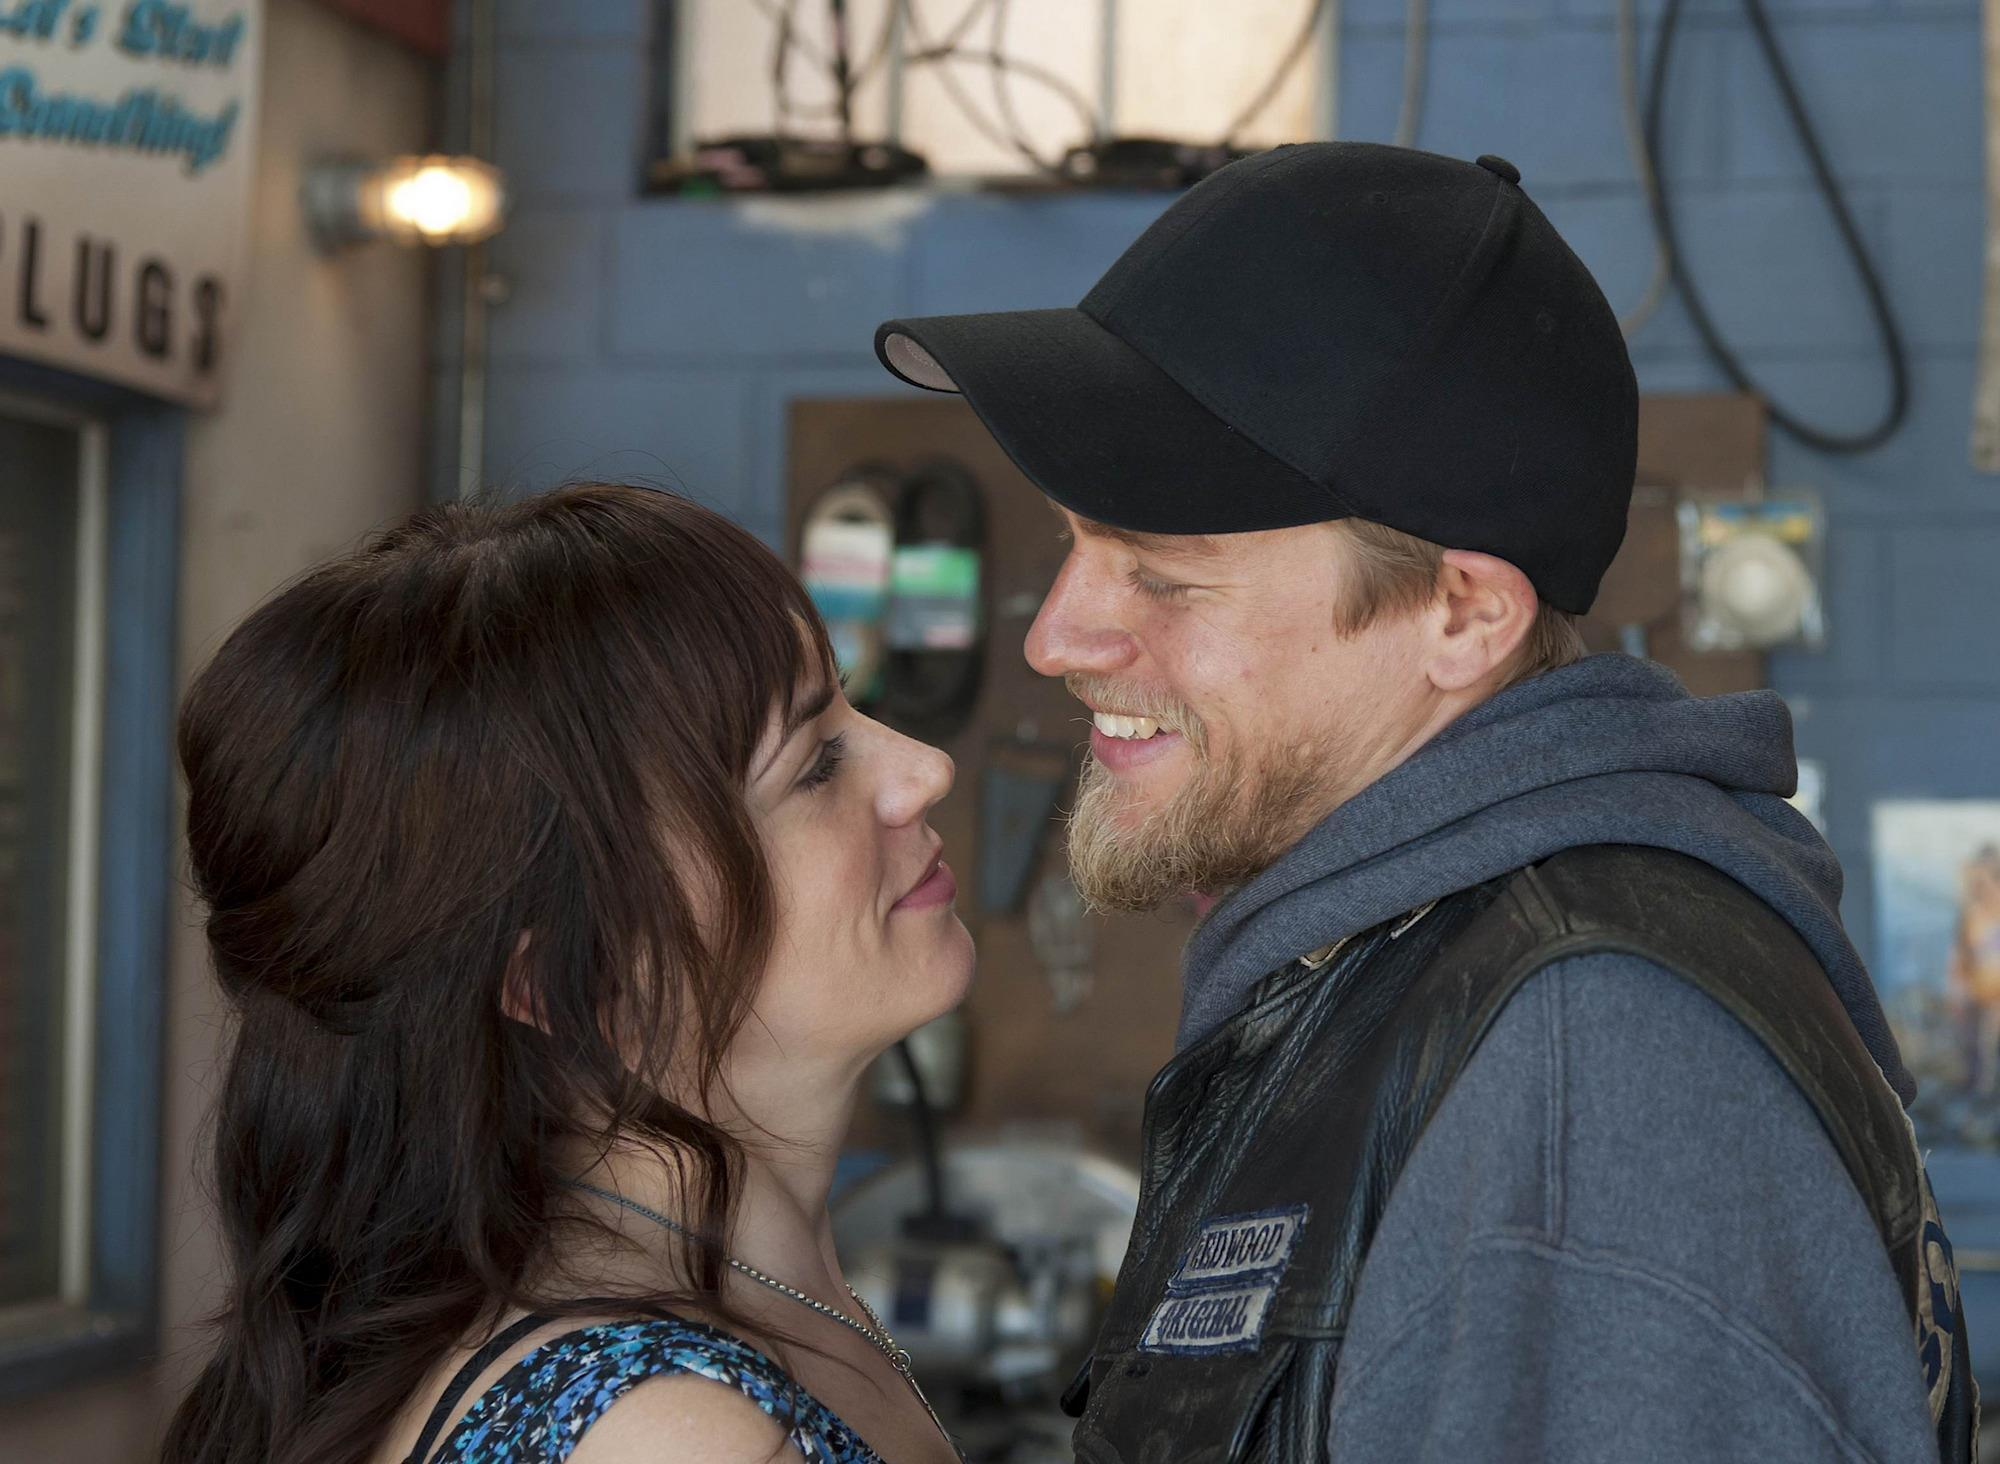 Jax & Tara 4x09♥ - Jax and Tara Photo (26486715) - Fanpop